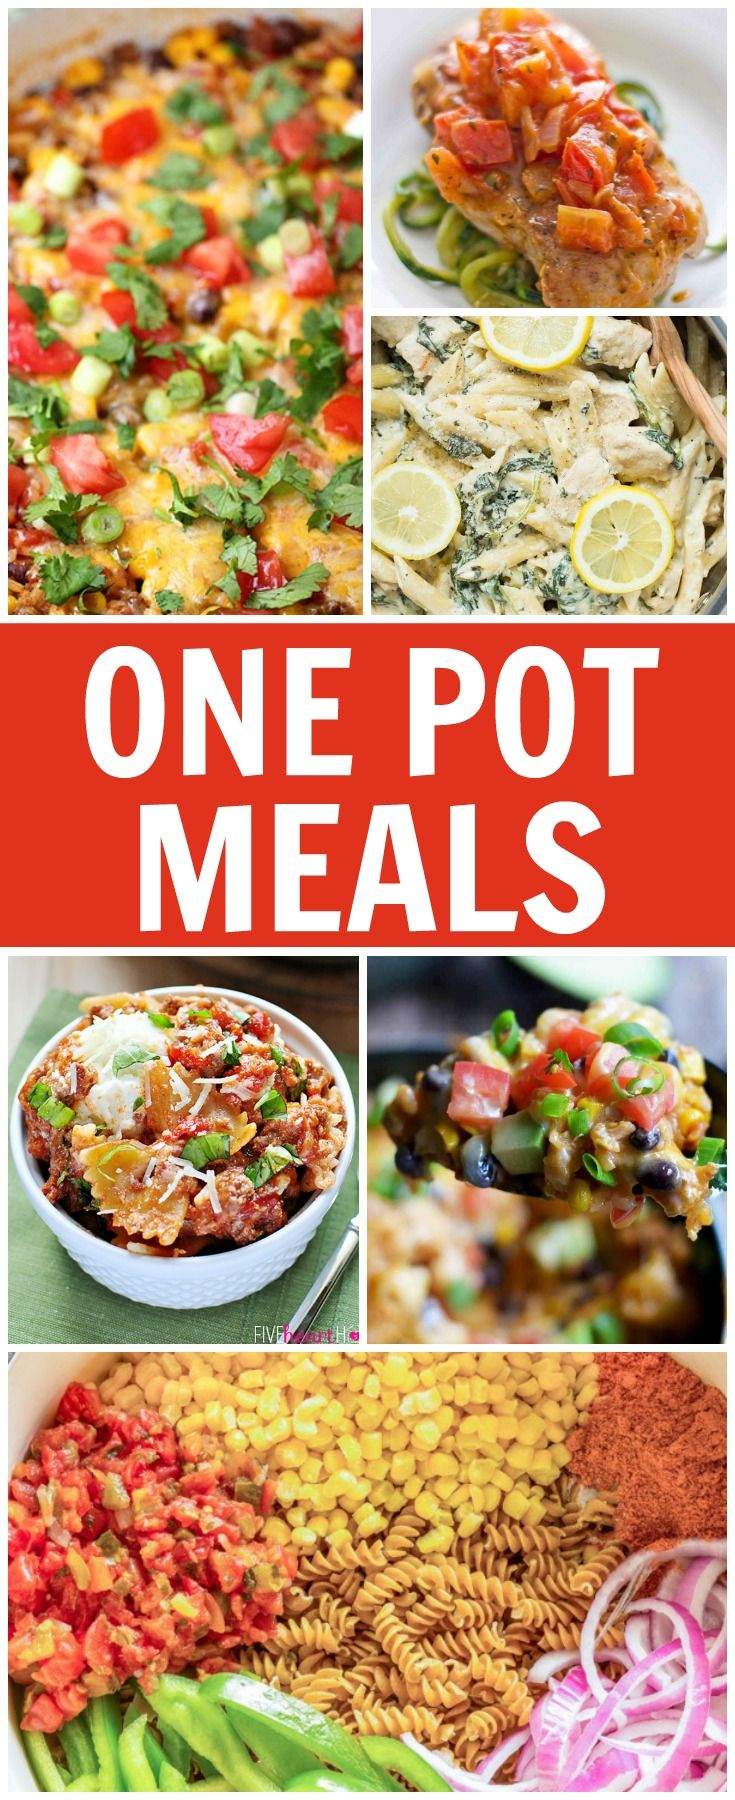 Scrumptious dinner ideas that require only one pot or skillet to pull together. Try one of these One Pot Meals for less stress and less mess for any night of the week!